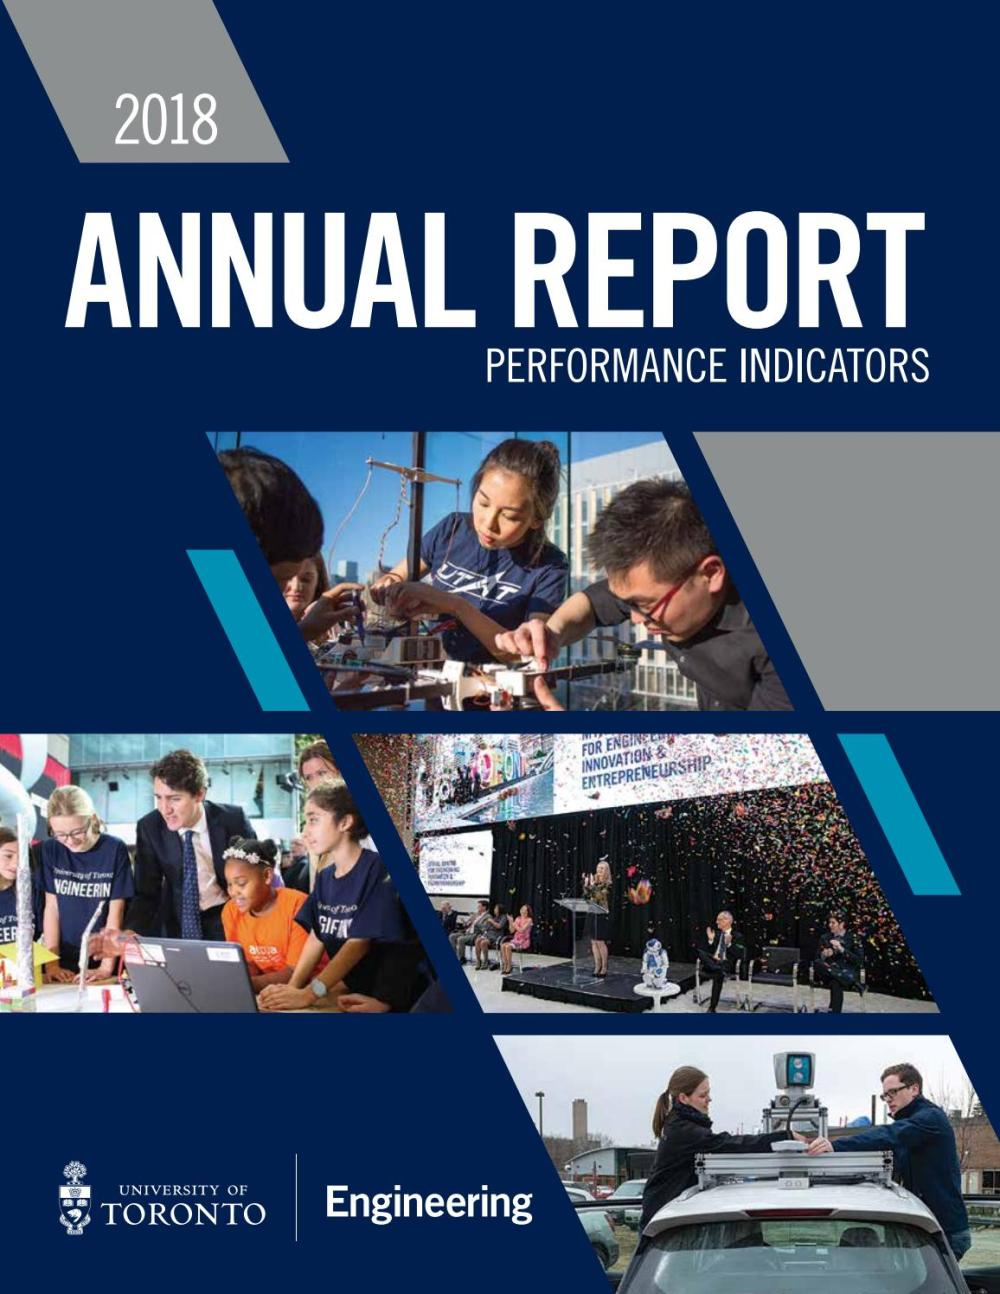 medium resolution of annual report 2018 performance indicators by university of toronto faculty of applied science engineering issuu